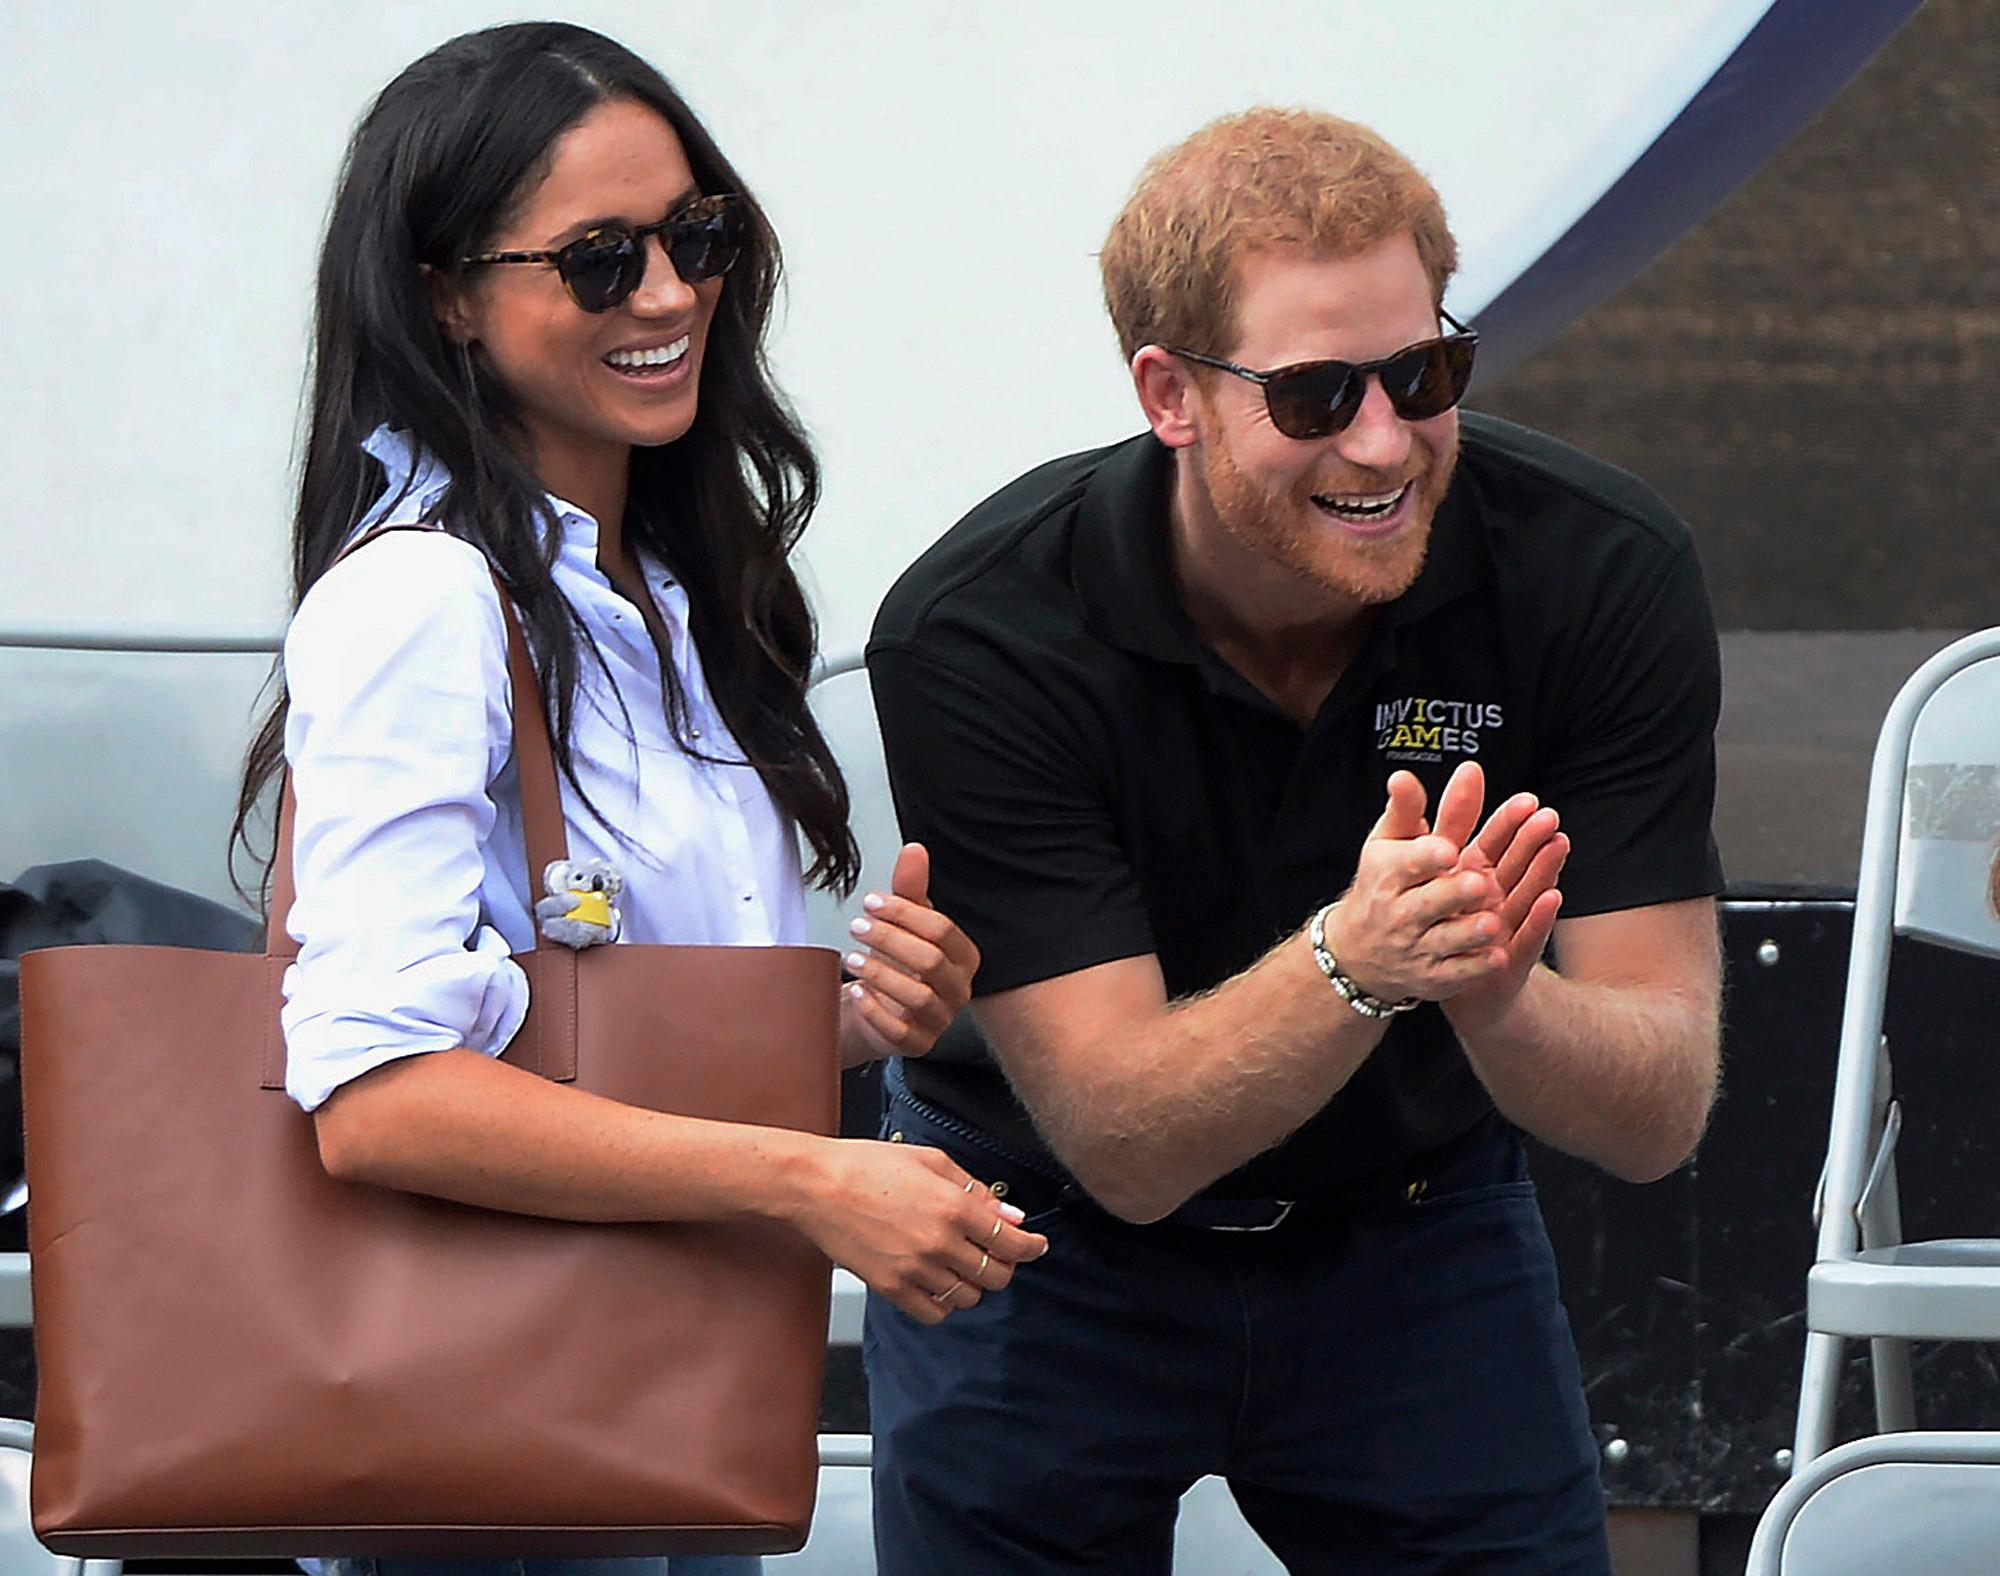 FILE - In this Monday, Sept. 25, 2017 file photo, Britain's Prince Harry and his girlfriend Meghan Markle attend the wheelchair tennis competition during the Invictus Games in Toronto. Palace officials announced Monday Nov. 27, 2017, Prince Harry and Meghan Markle are engaged, and will marry in the spring. (Nathan Denette/The Canadian Press via AP, File)